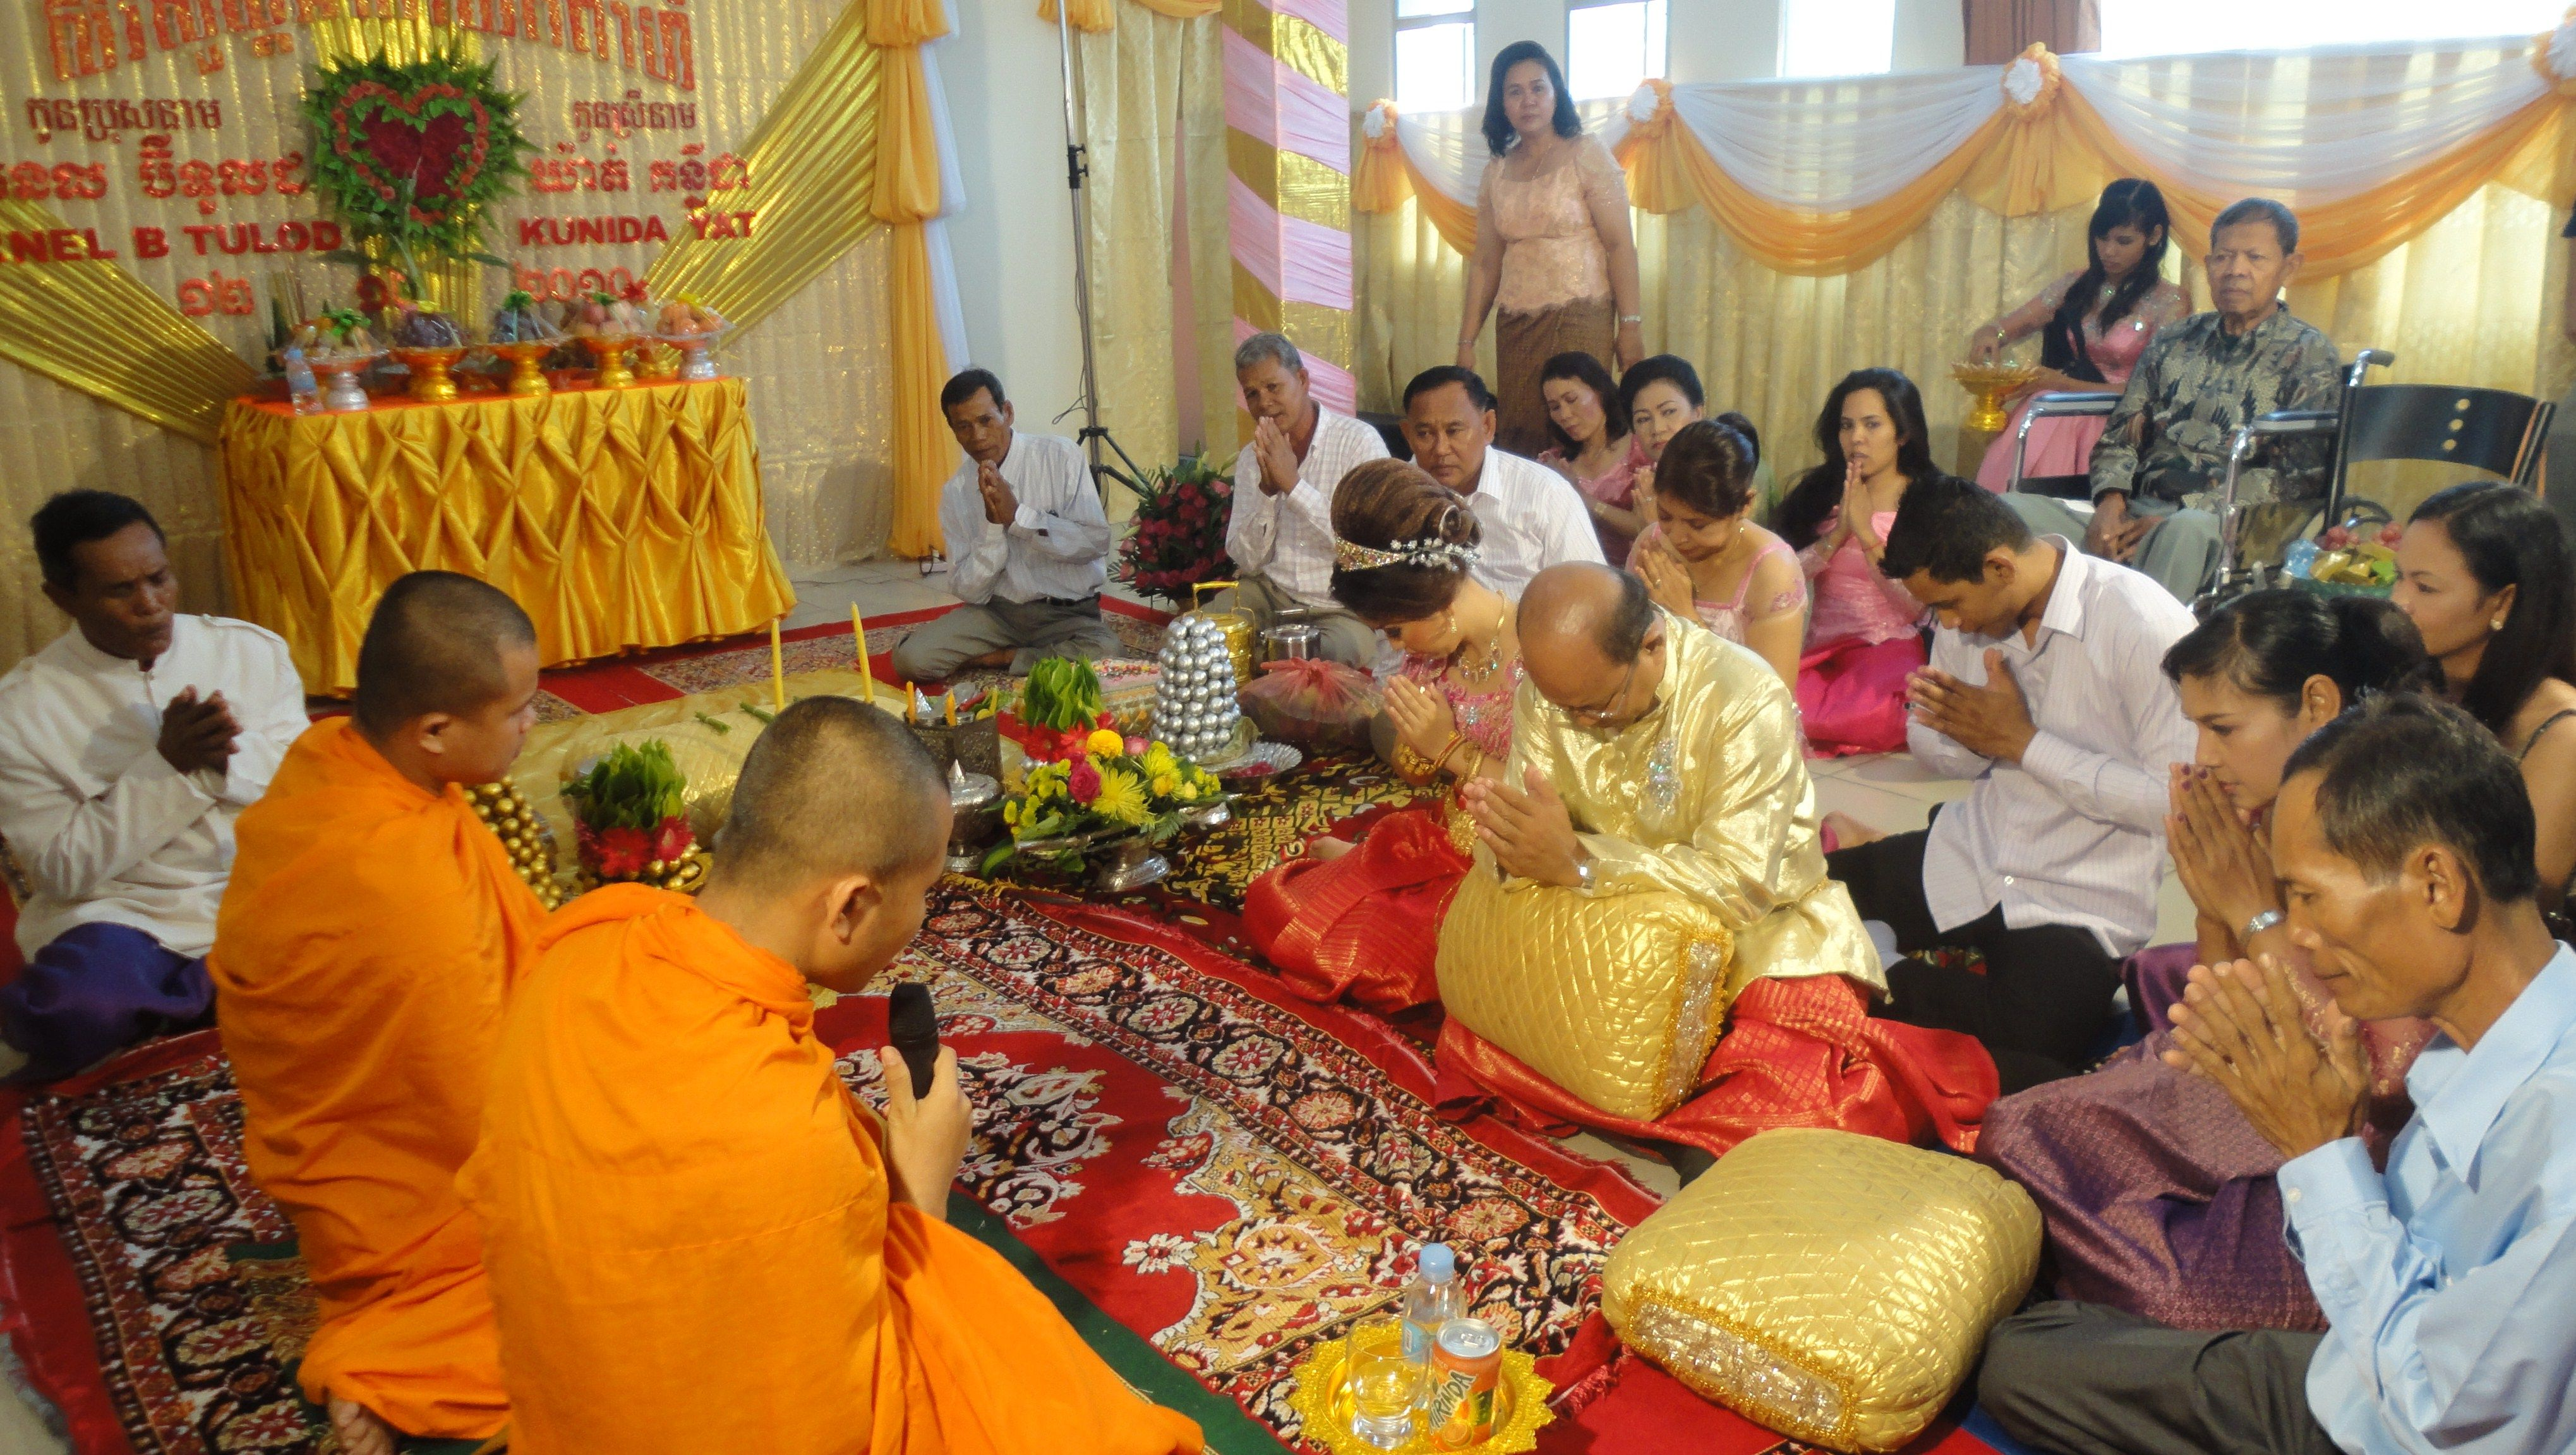 Receive Blessing From The Monks